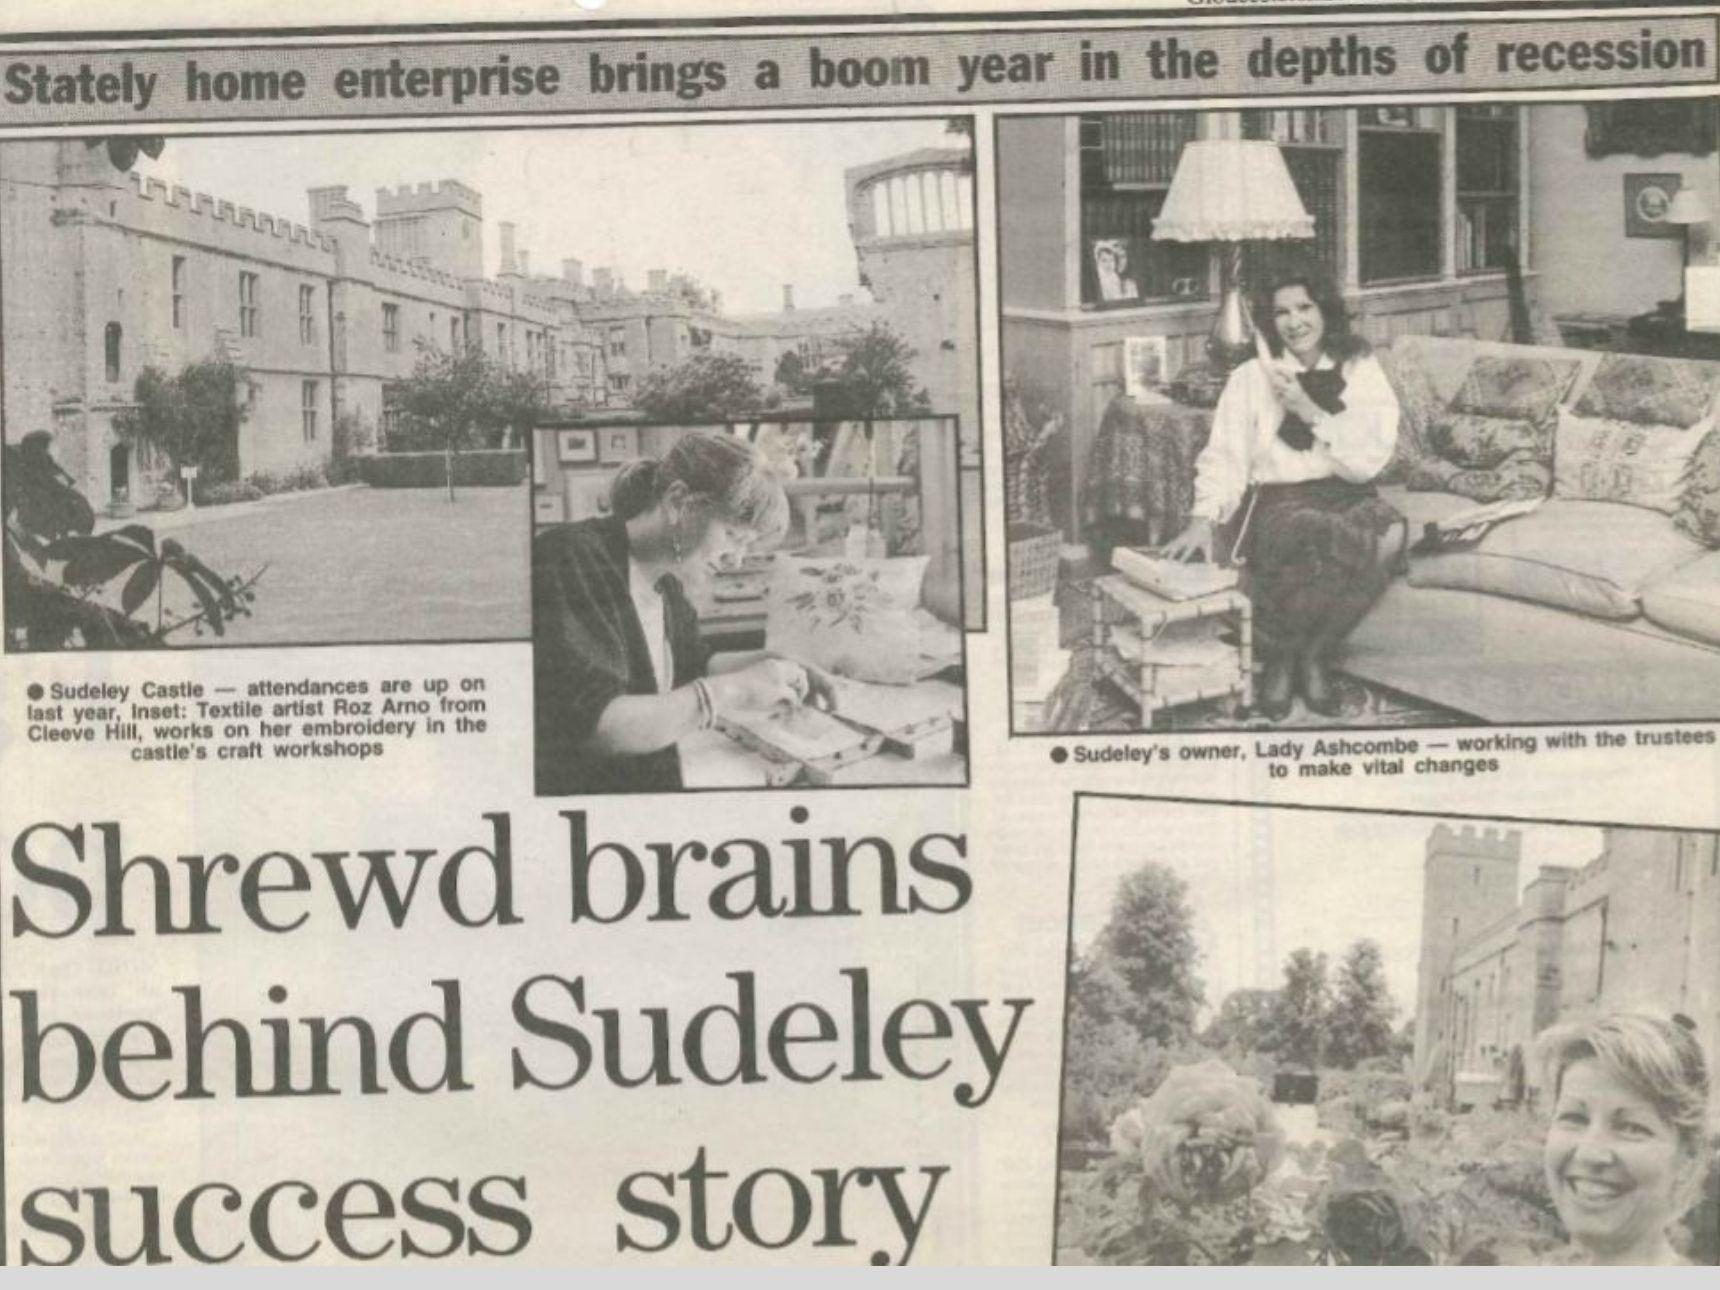 Newspaper cutting headlined